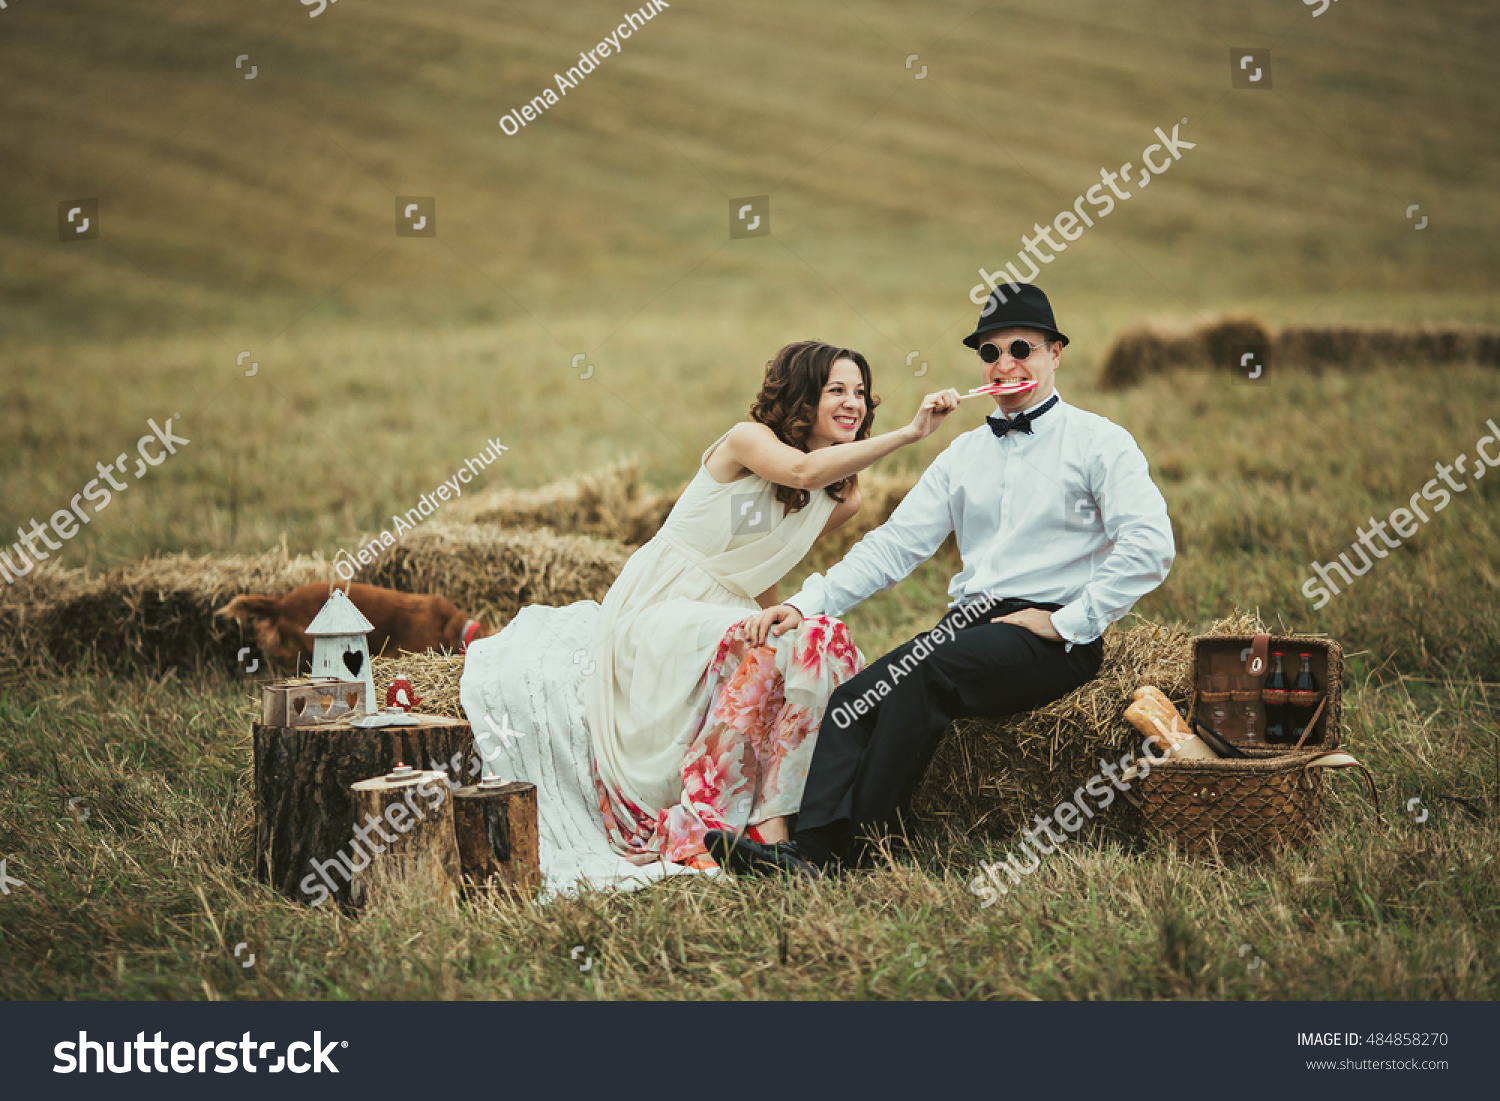 Where can I spend an unforgettable time with my girlfriend in Moscow and the Moscow region